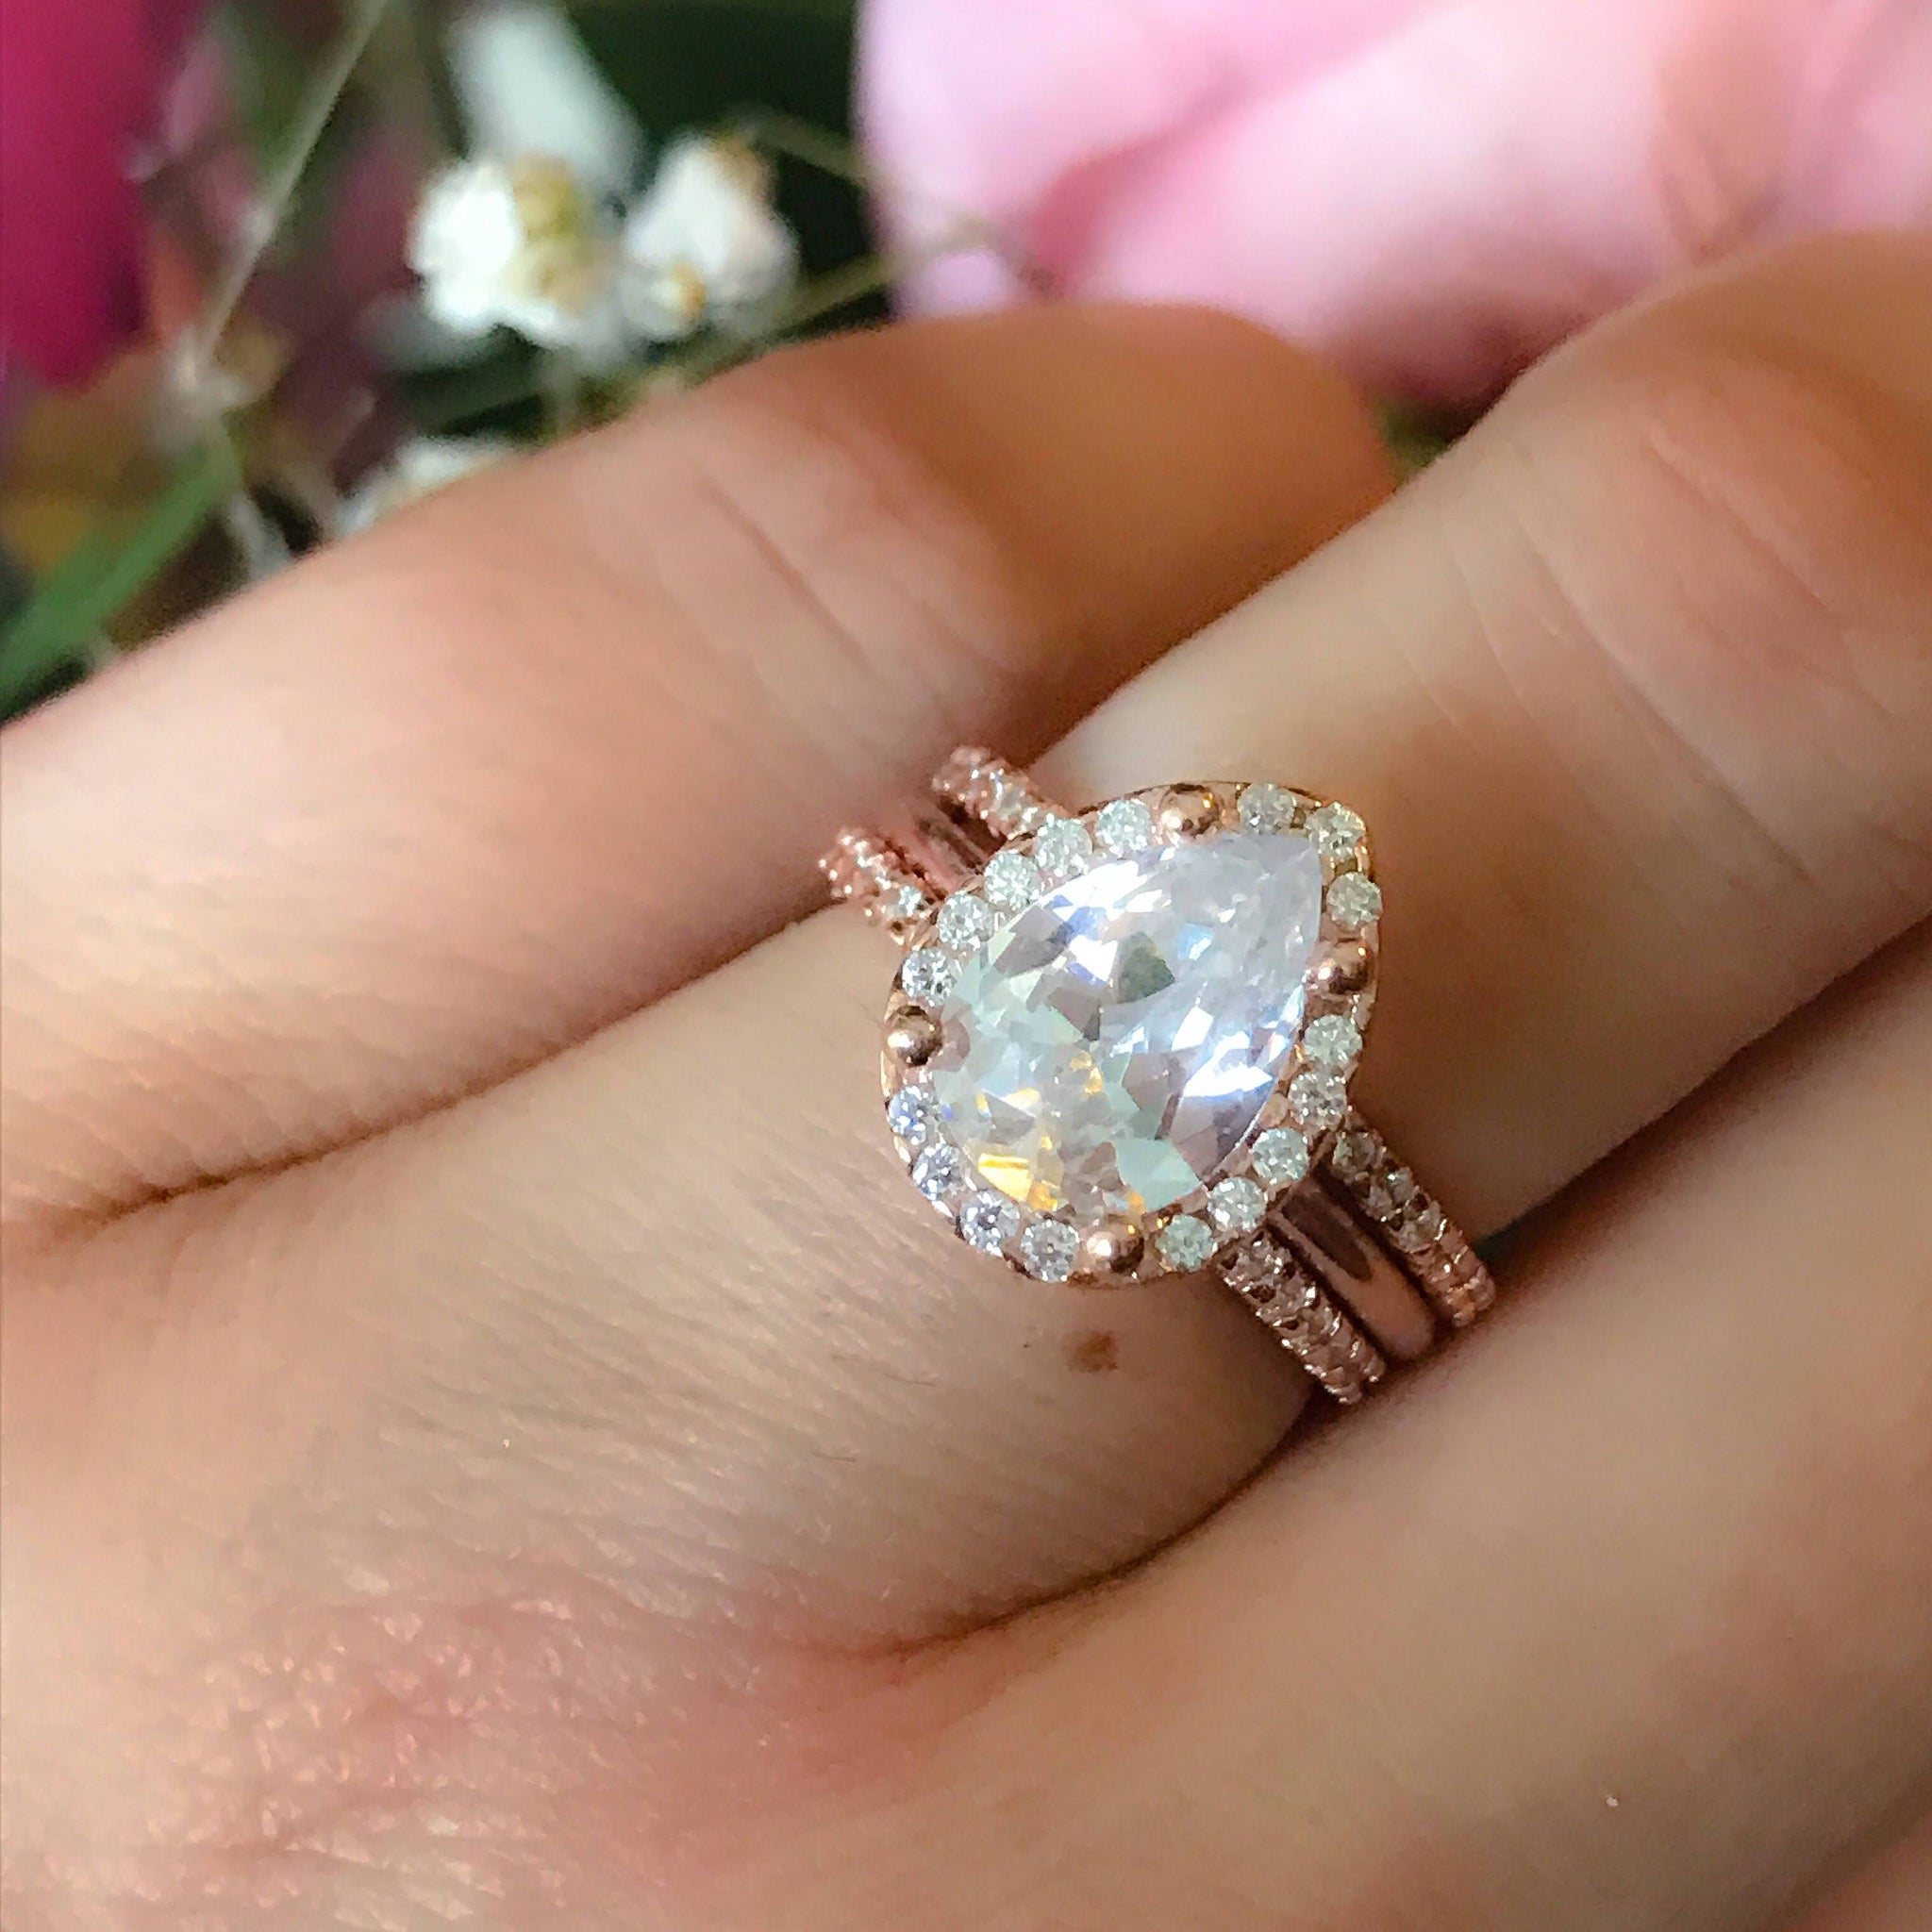 engagement shaped perfect diamonds weddings pear spiegelman inside szer diamond with rings ring pav trend schlosberg band jewelry news